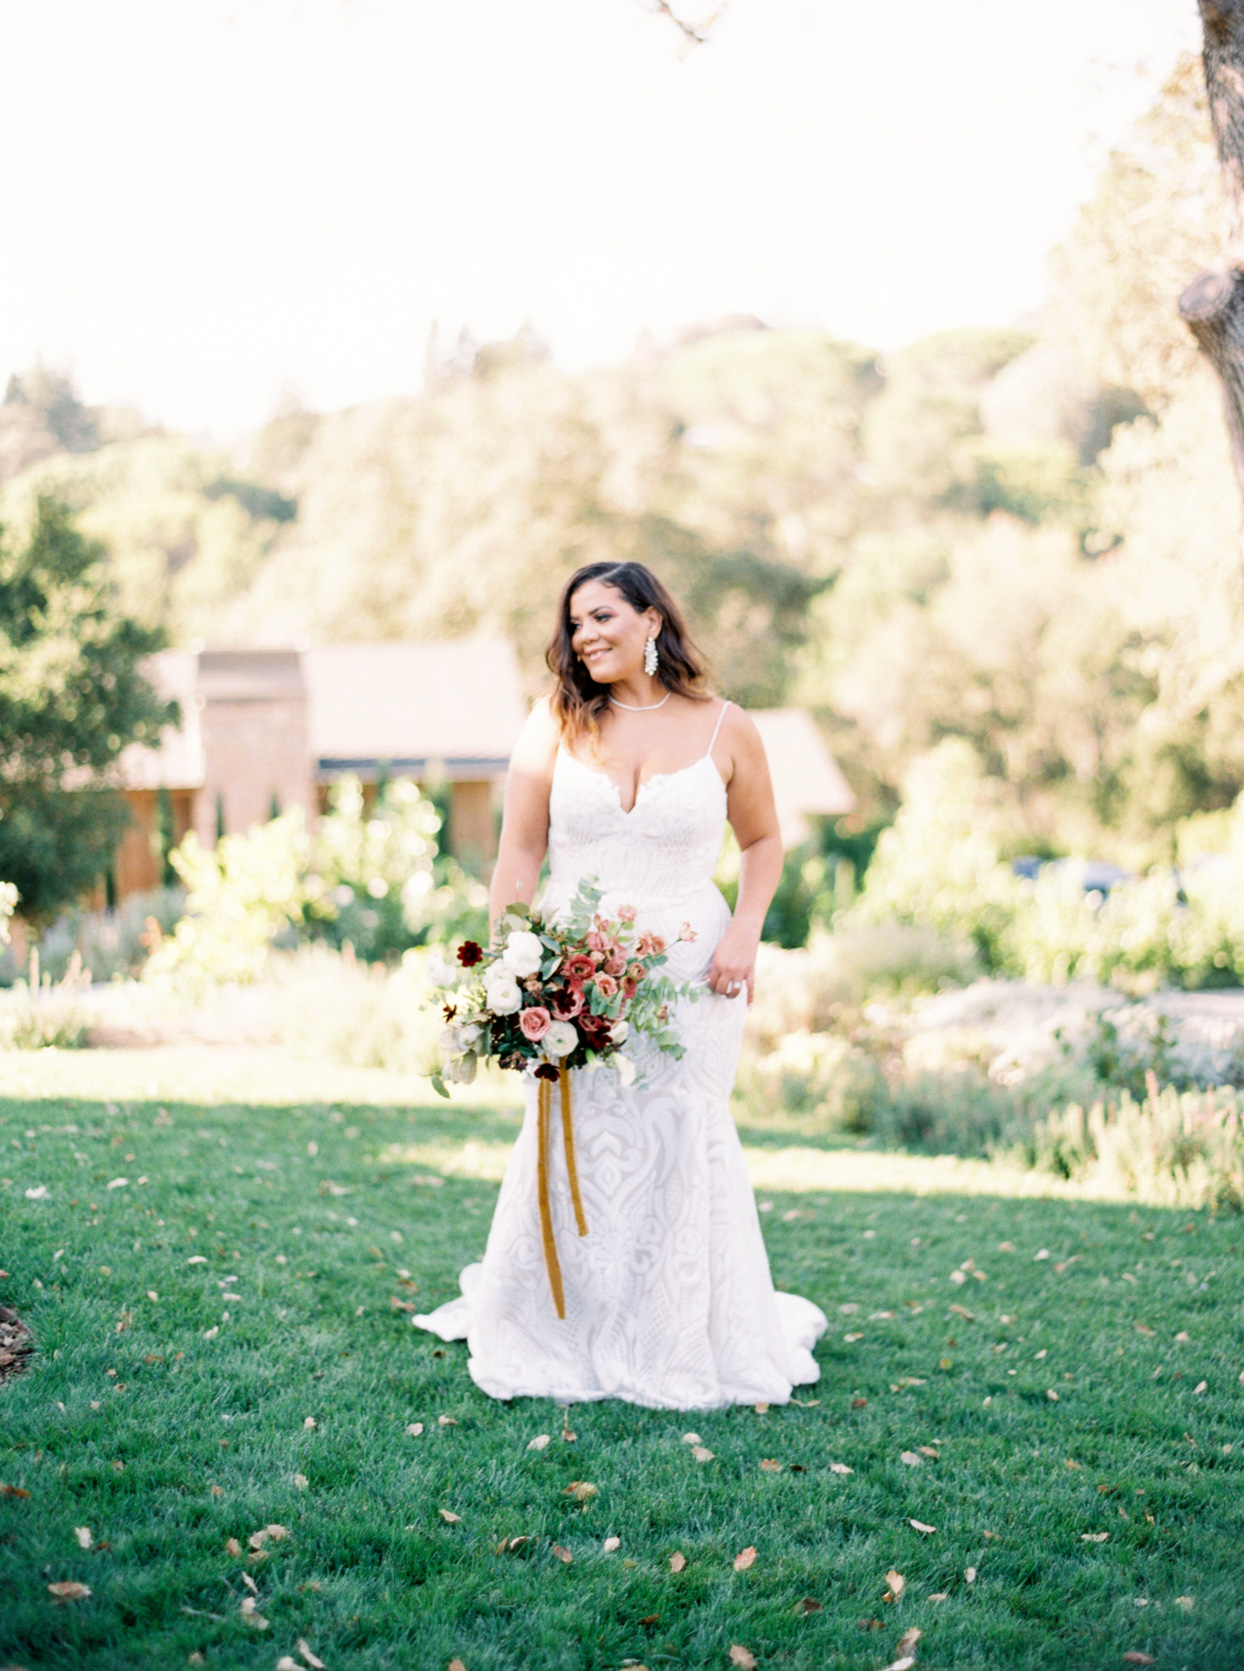 bride holding fall floral bouquet in grassy field